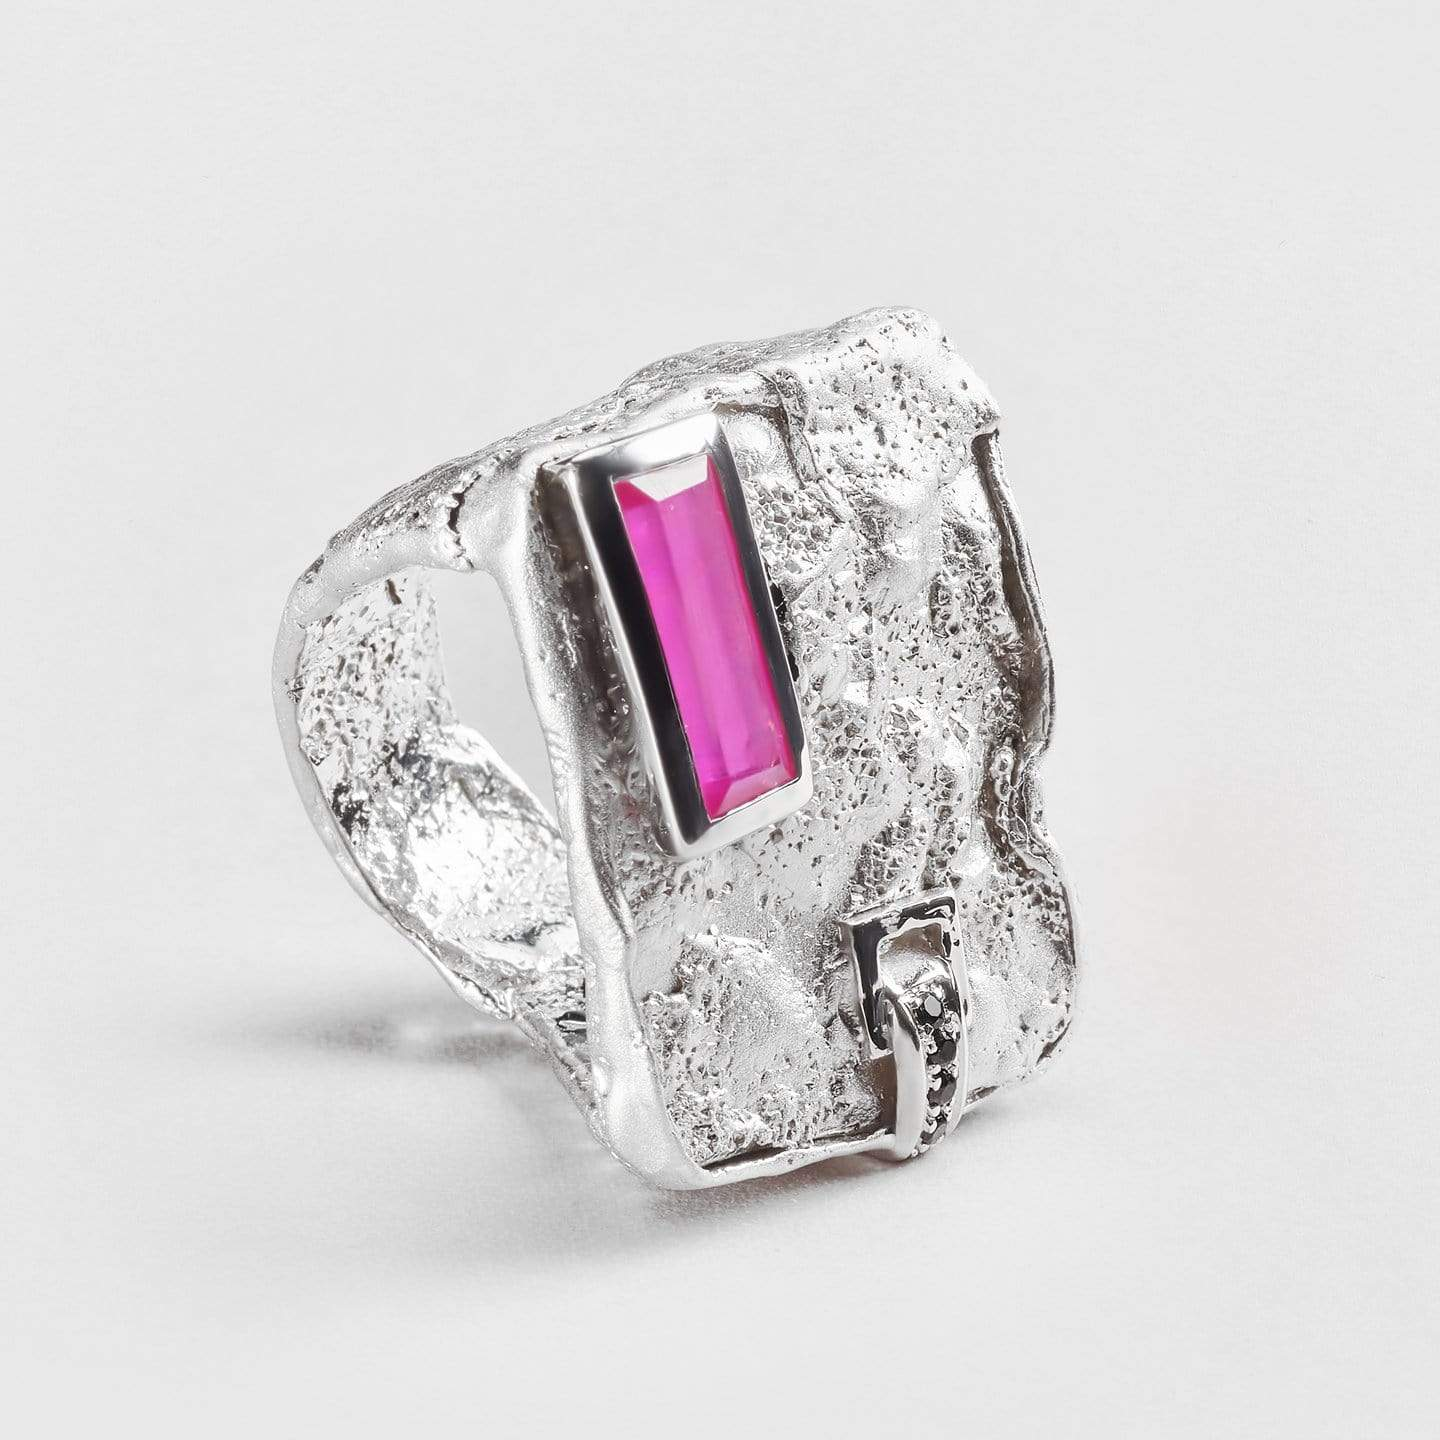 Nirdka Ruby and Spinel Ring